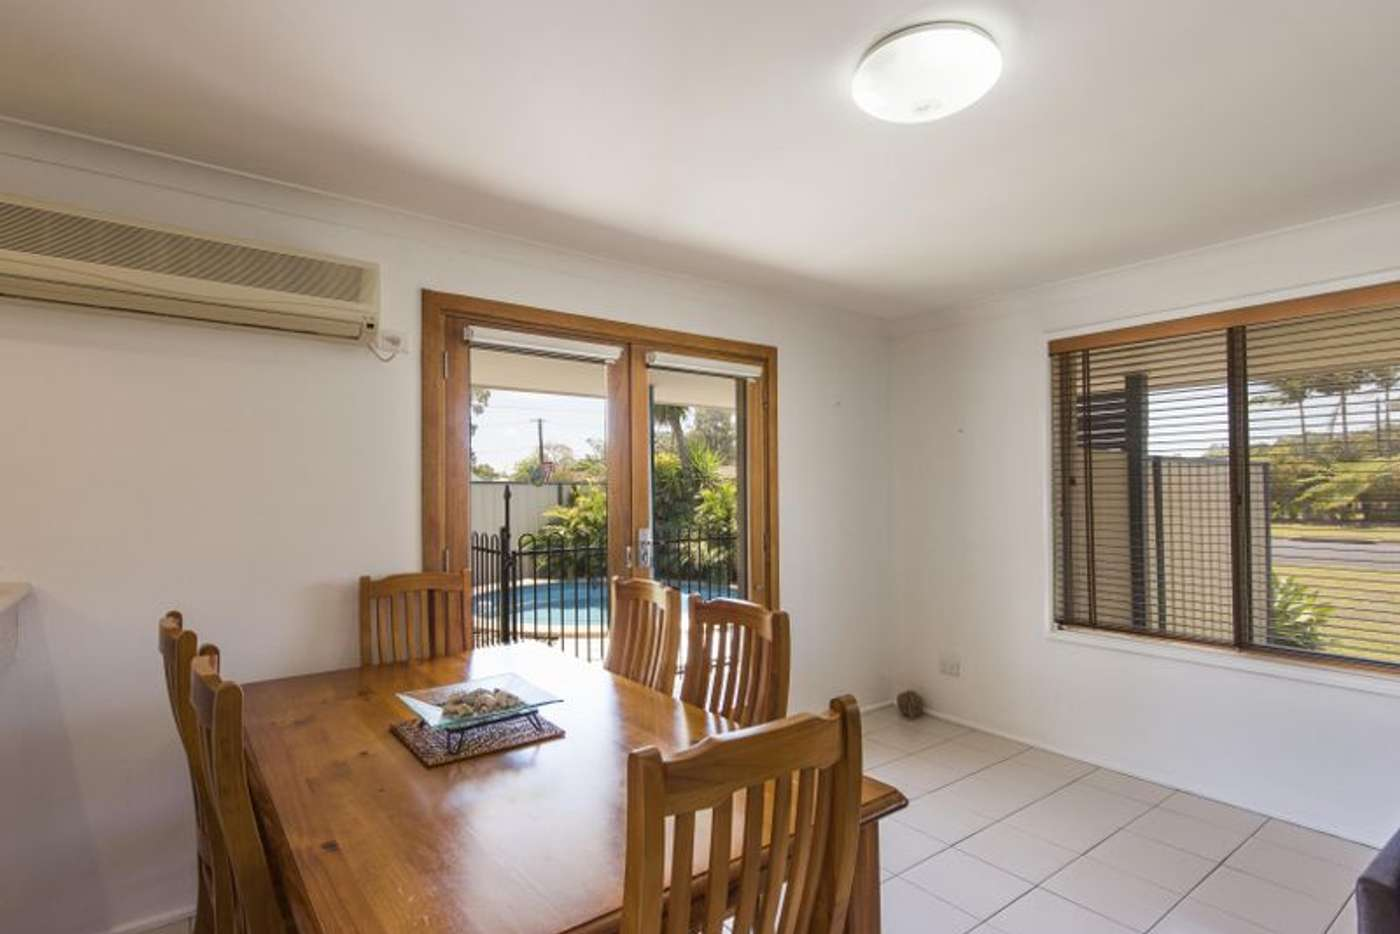 Seventh view of Homely house listing, 16 Loxton Avenue, Iluka NSW 2466